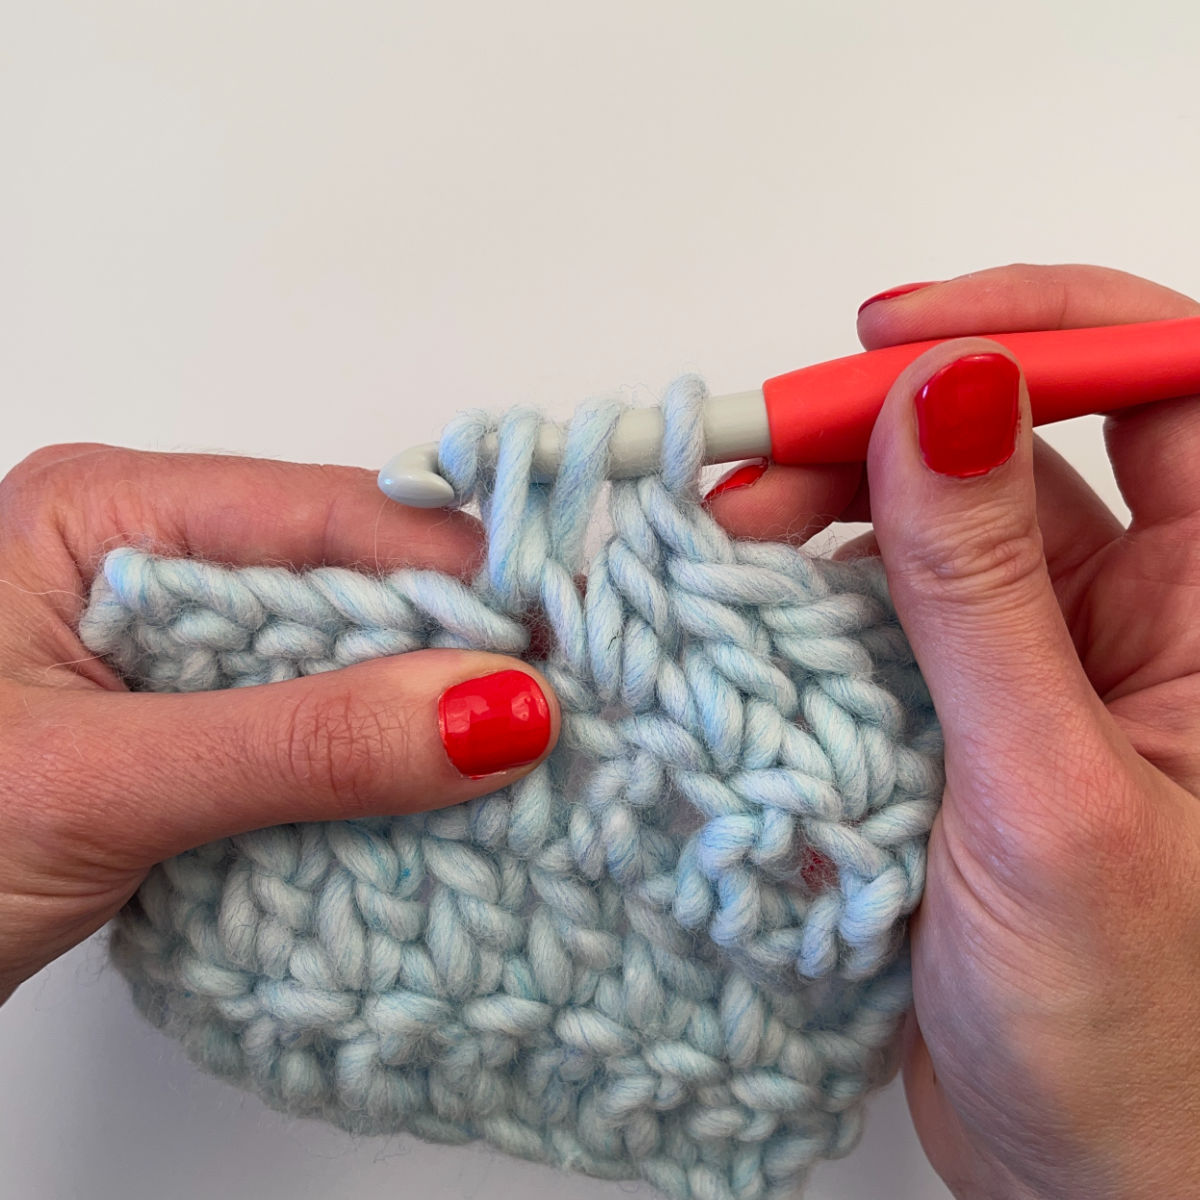 Step 4: Yarn over and pull through 2 loops